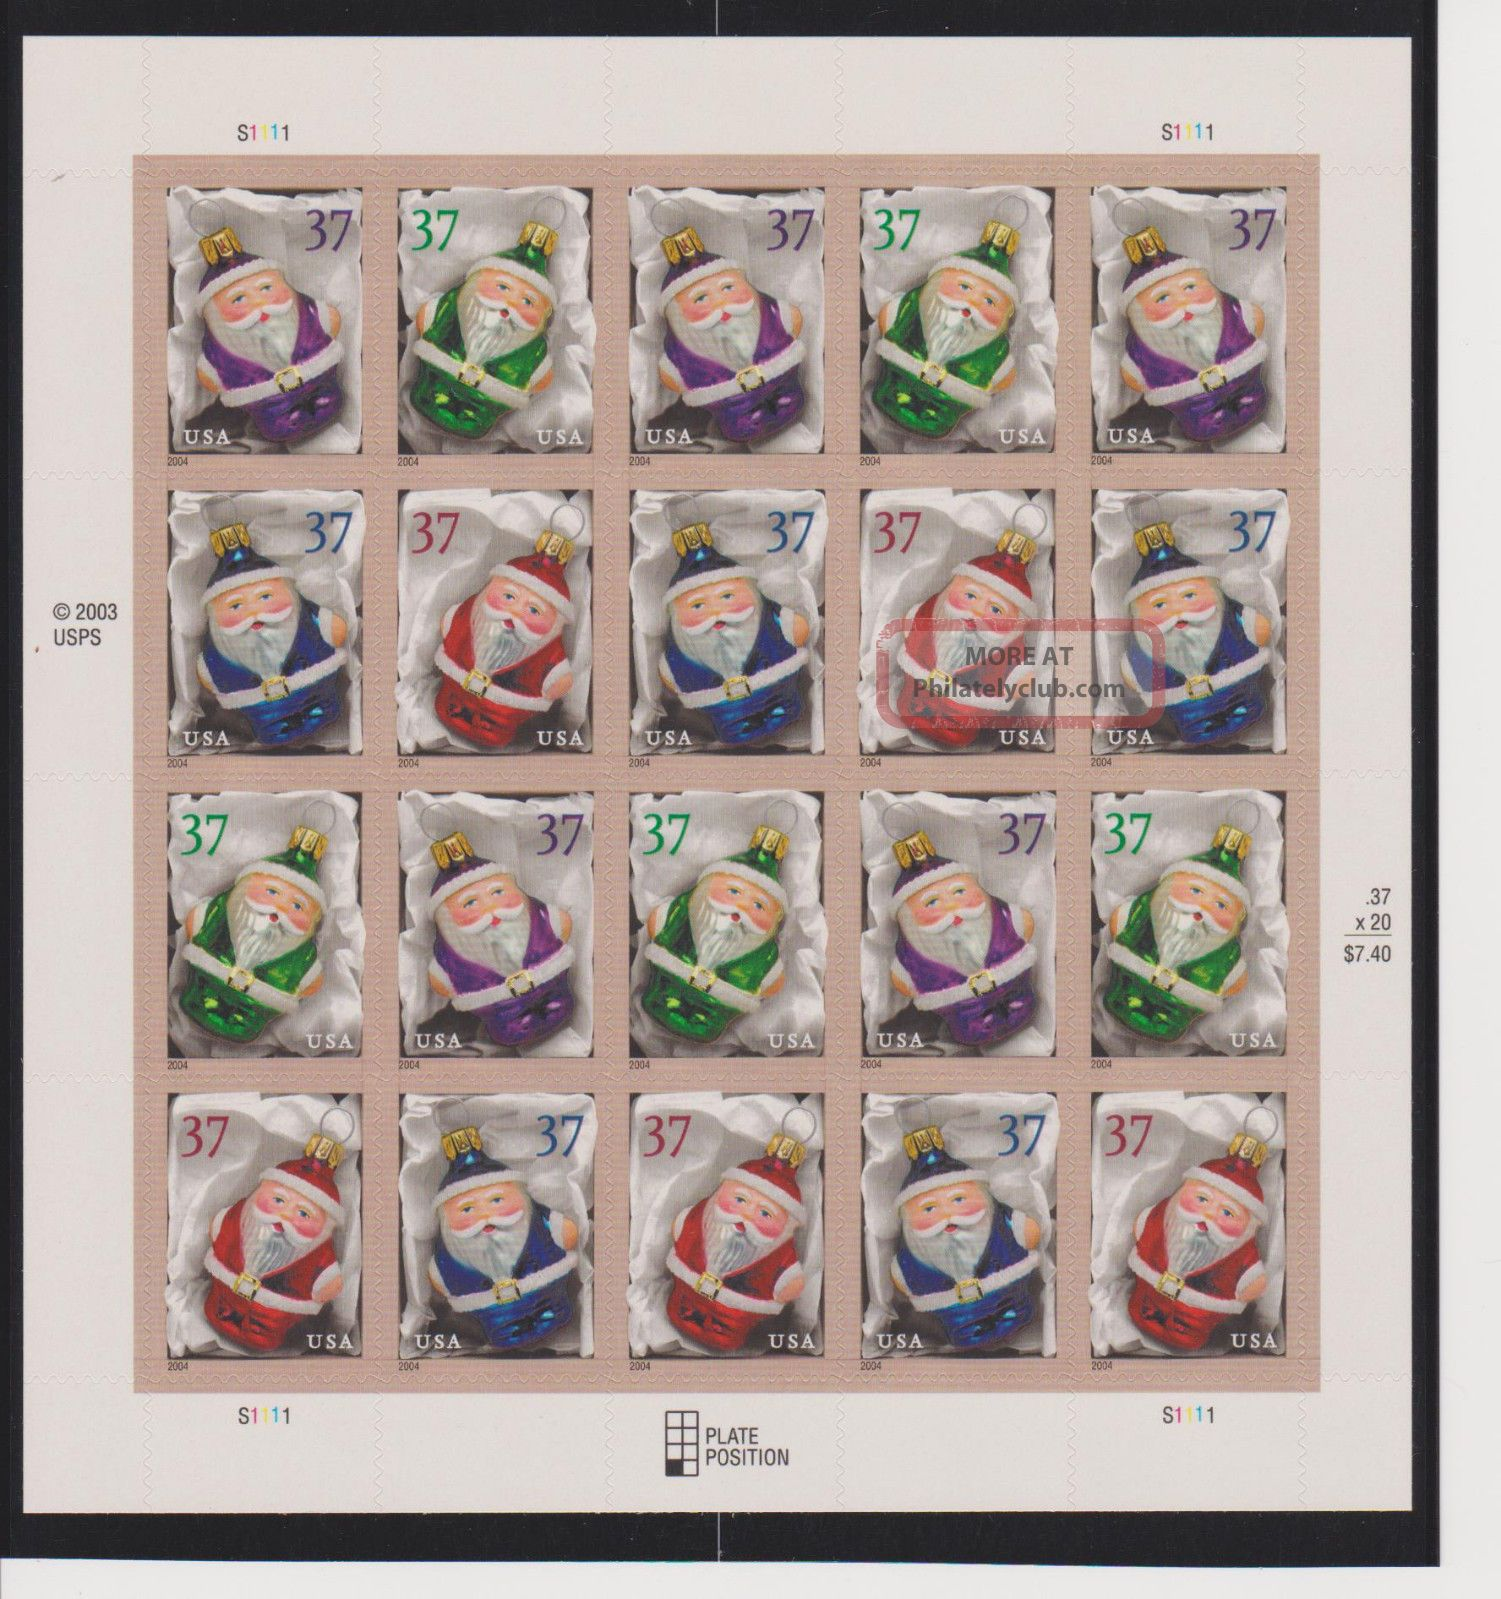 Us Christmas Ornaments Sheet Of 20 Scott 3883 - 3886 Topical Stamps photo